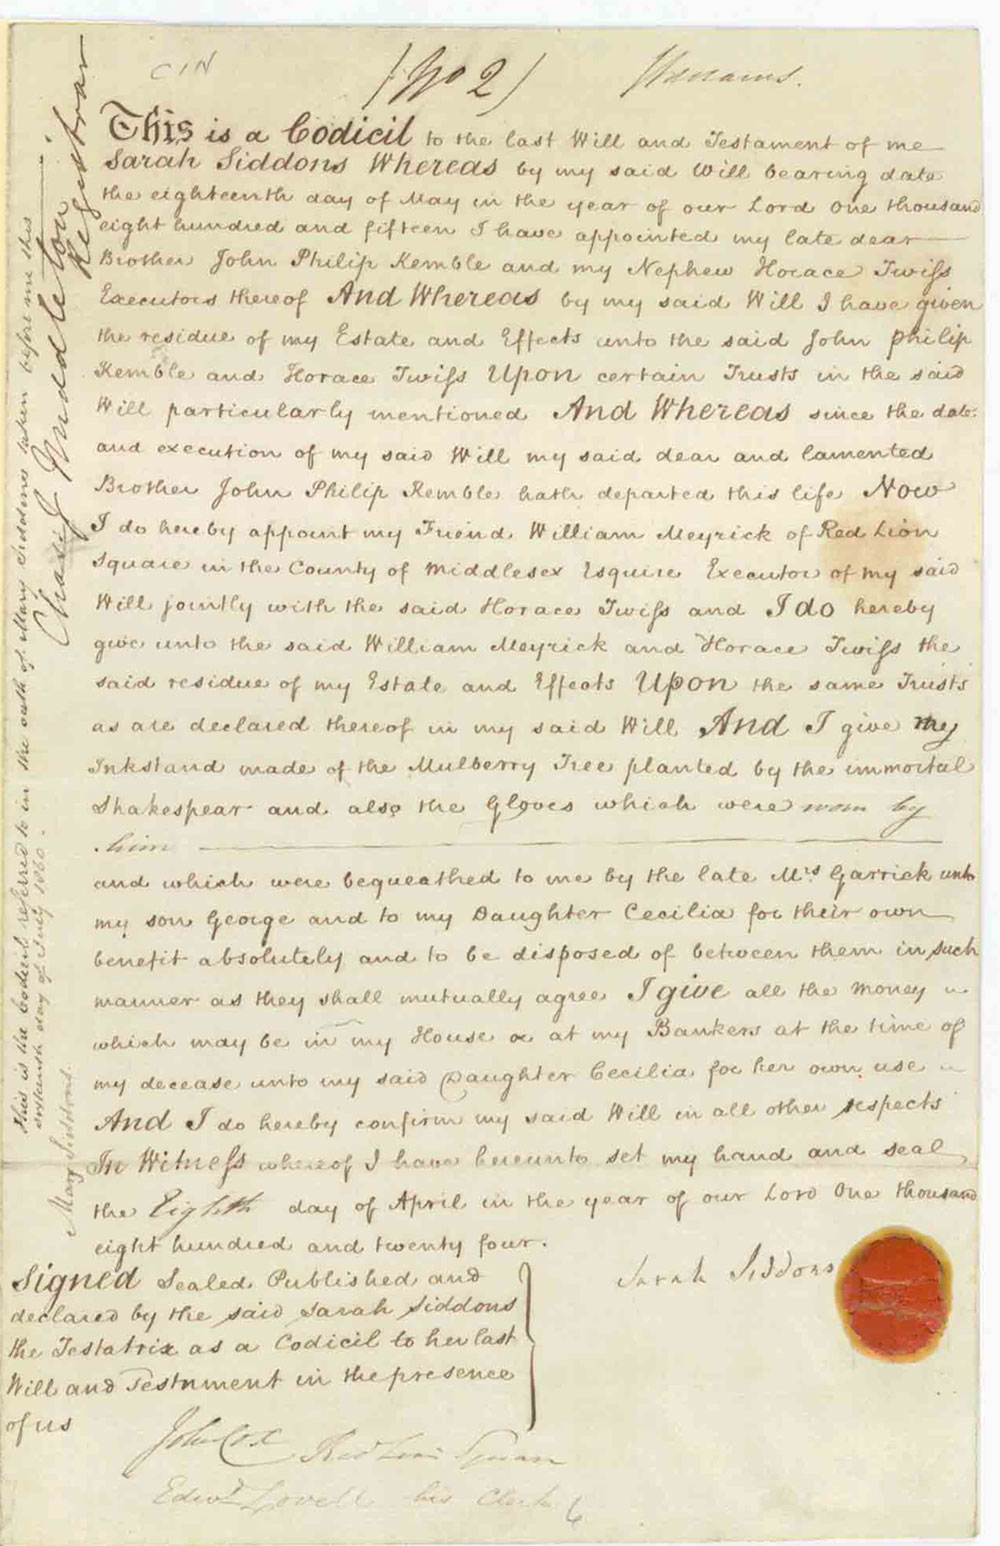 Codicil to the will of Sarah Siddons, 1831 (PROB 1/83)